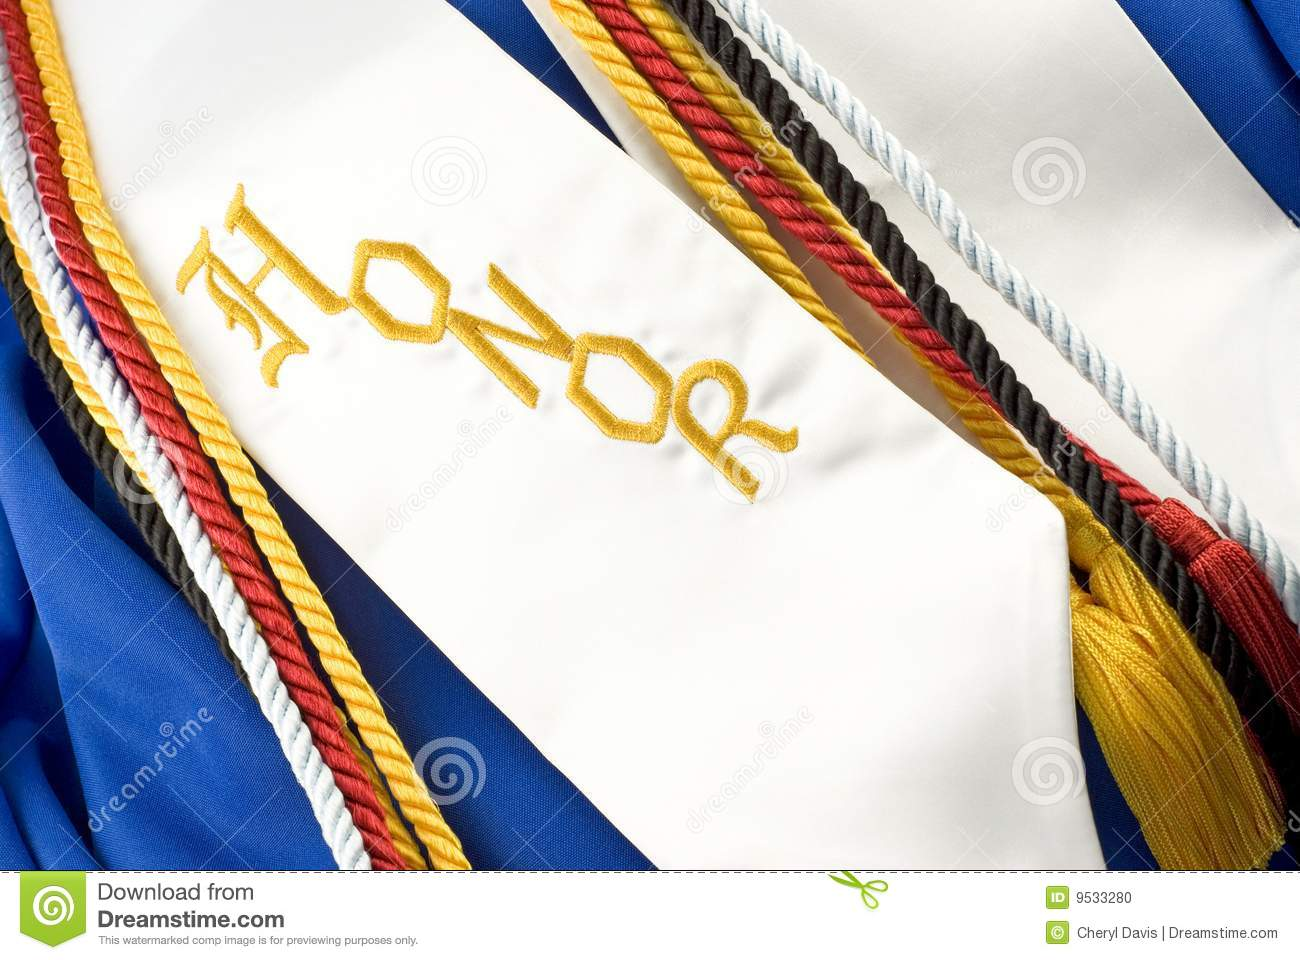 blue graduation gown with cords and the word Honors, horizontal full ...